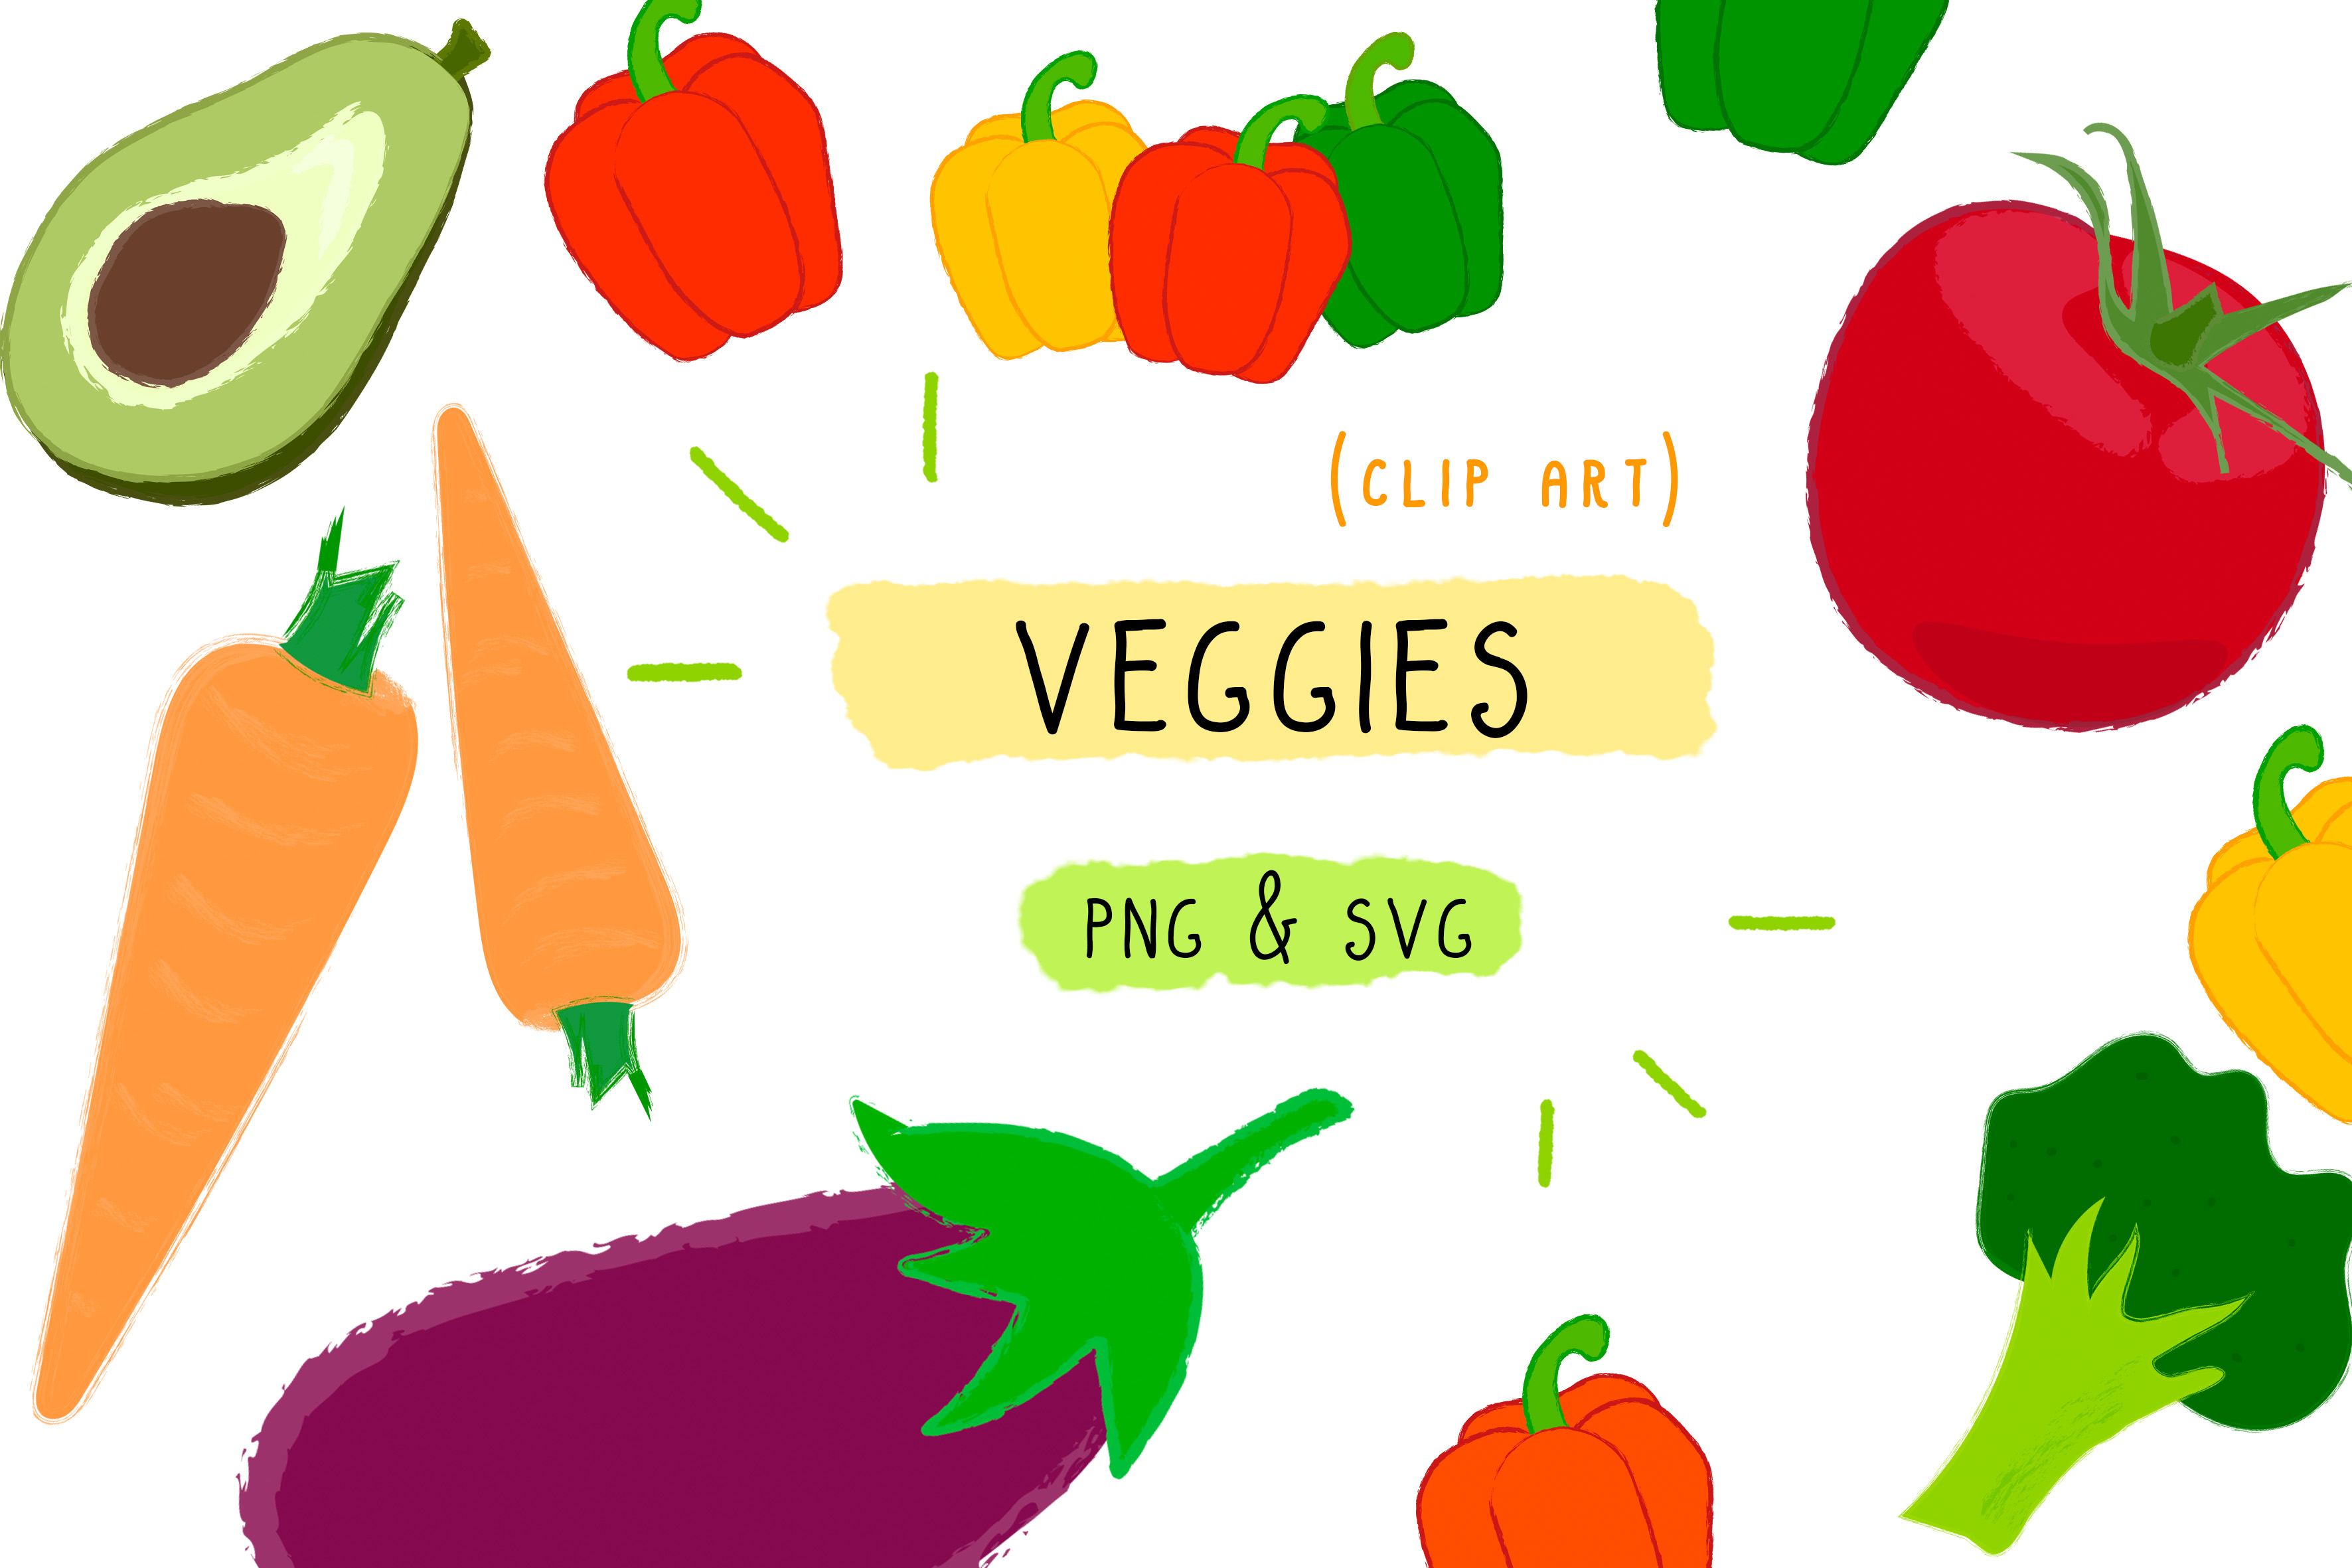 Veggies Vegan Food Clipart Vegetables.